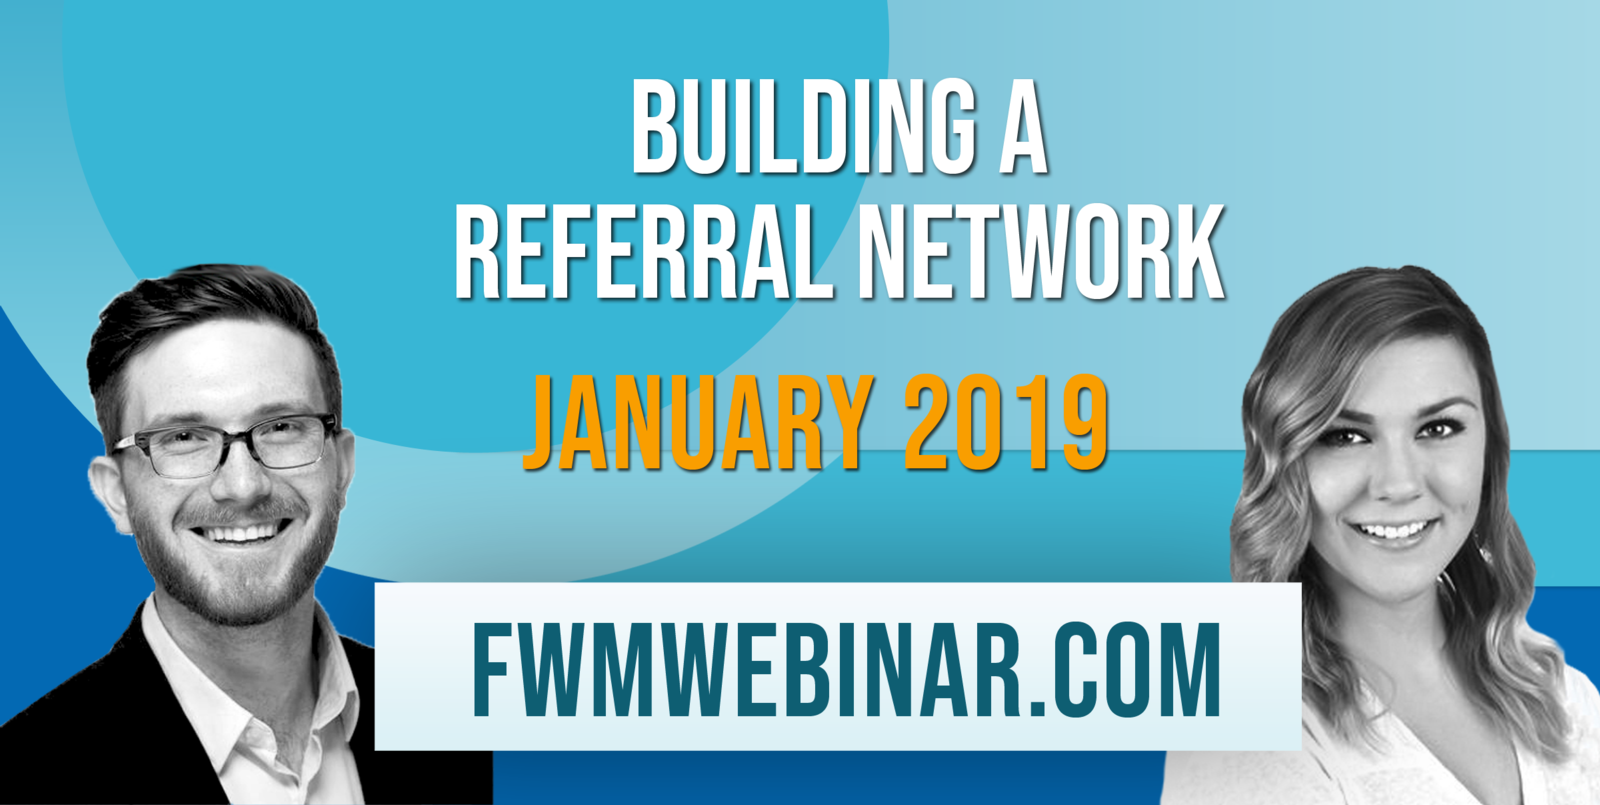 Charley Mann and Molly McCormick host the January 2019 Webinar, Building a referral Network.